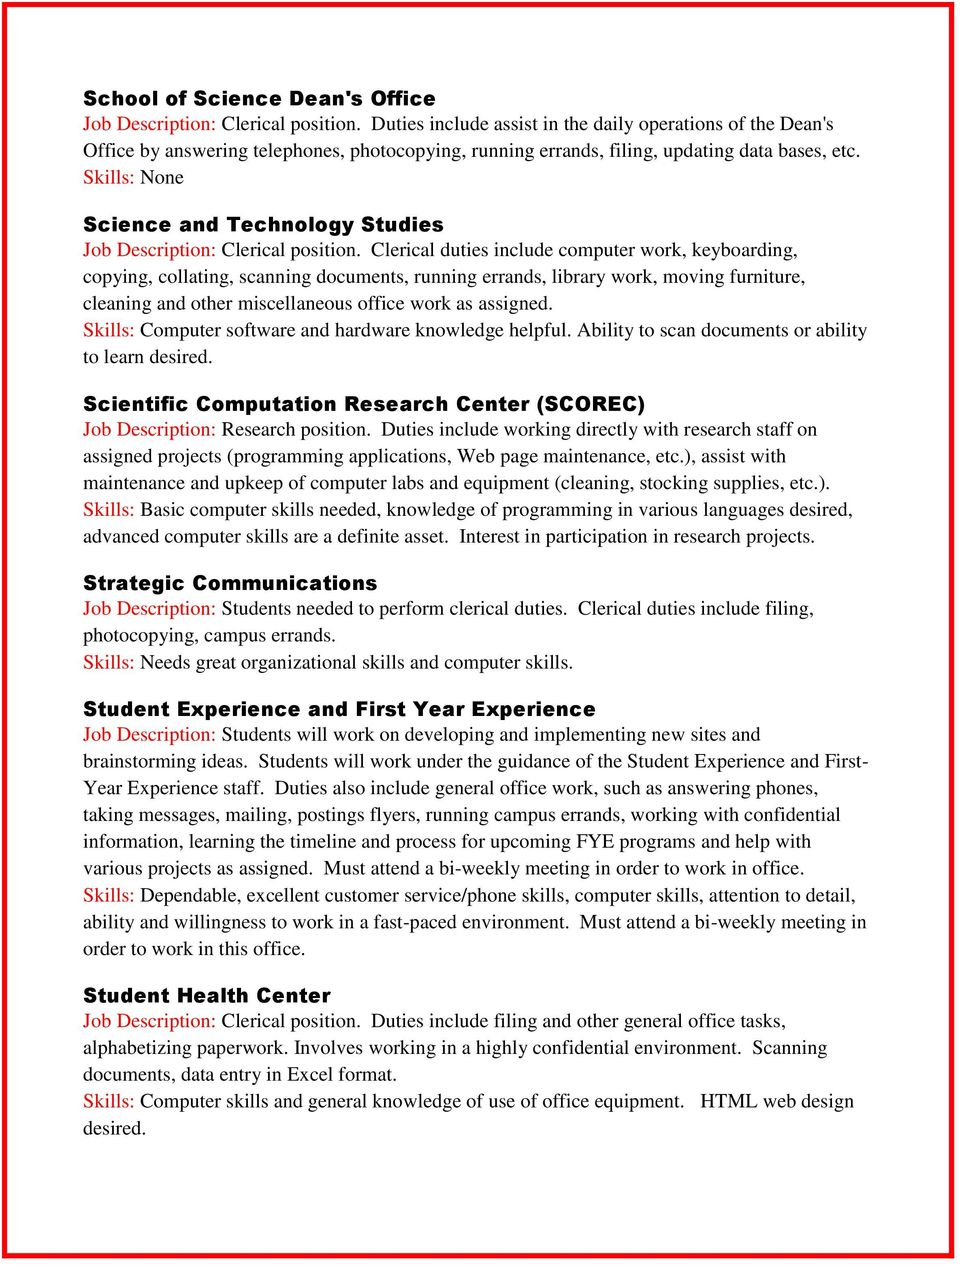 Science and Technology Studies Job Description: Clerical position.